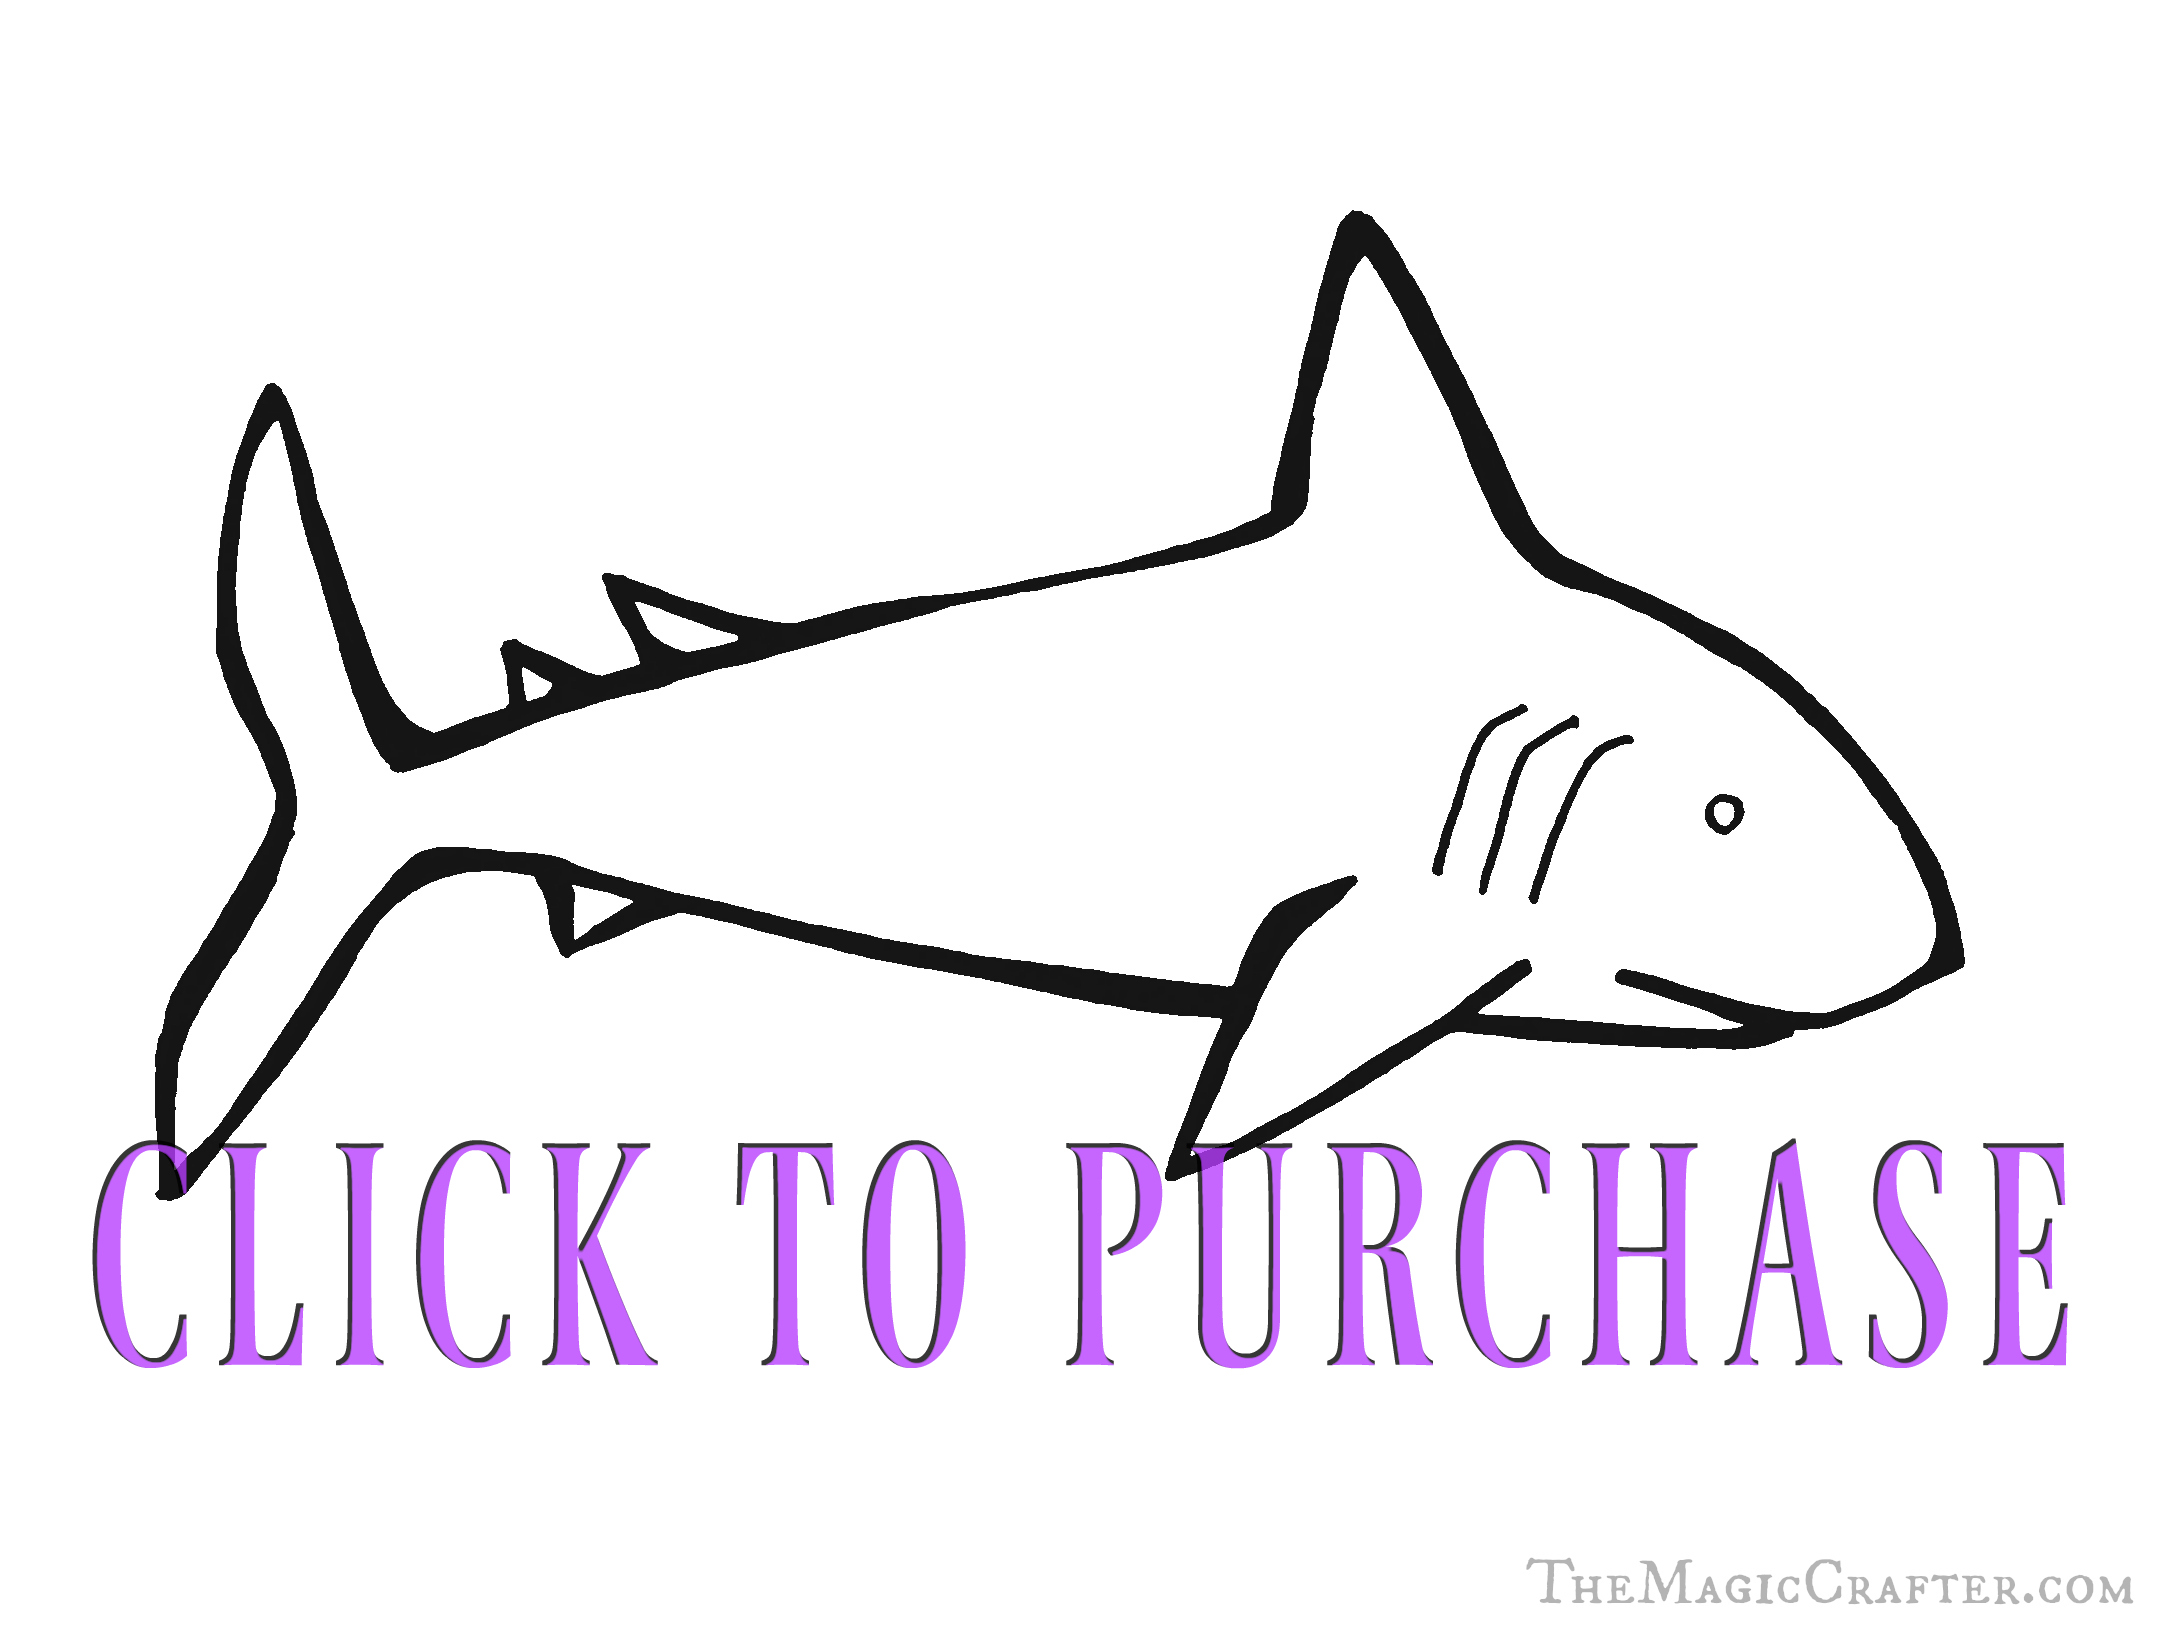 Shark Coloring Pages! Click on this image to go to The Magic Crafter's Etsy store. There, you will be able to purchase and download this cute printable coloring sheet. It is perfect for Pirate Birthday Parties, mermaid parties, and under the sea parties! ♥